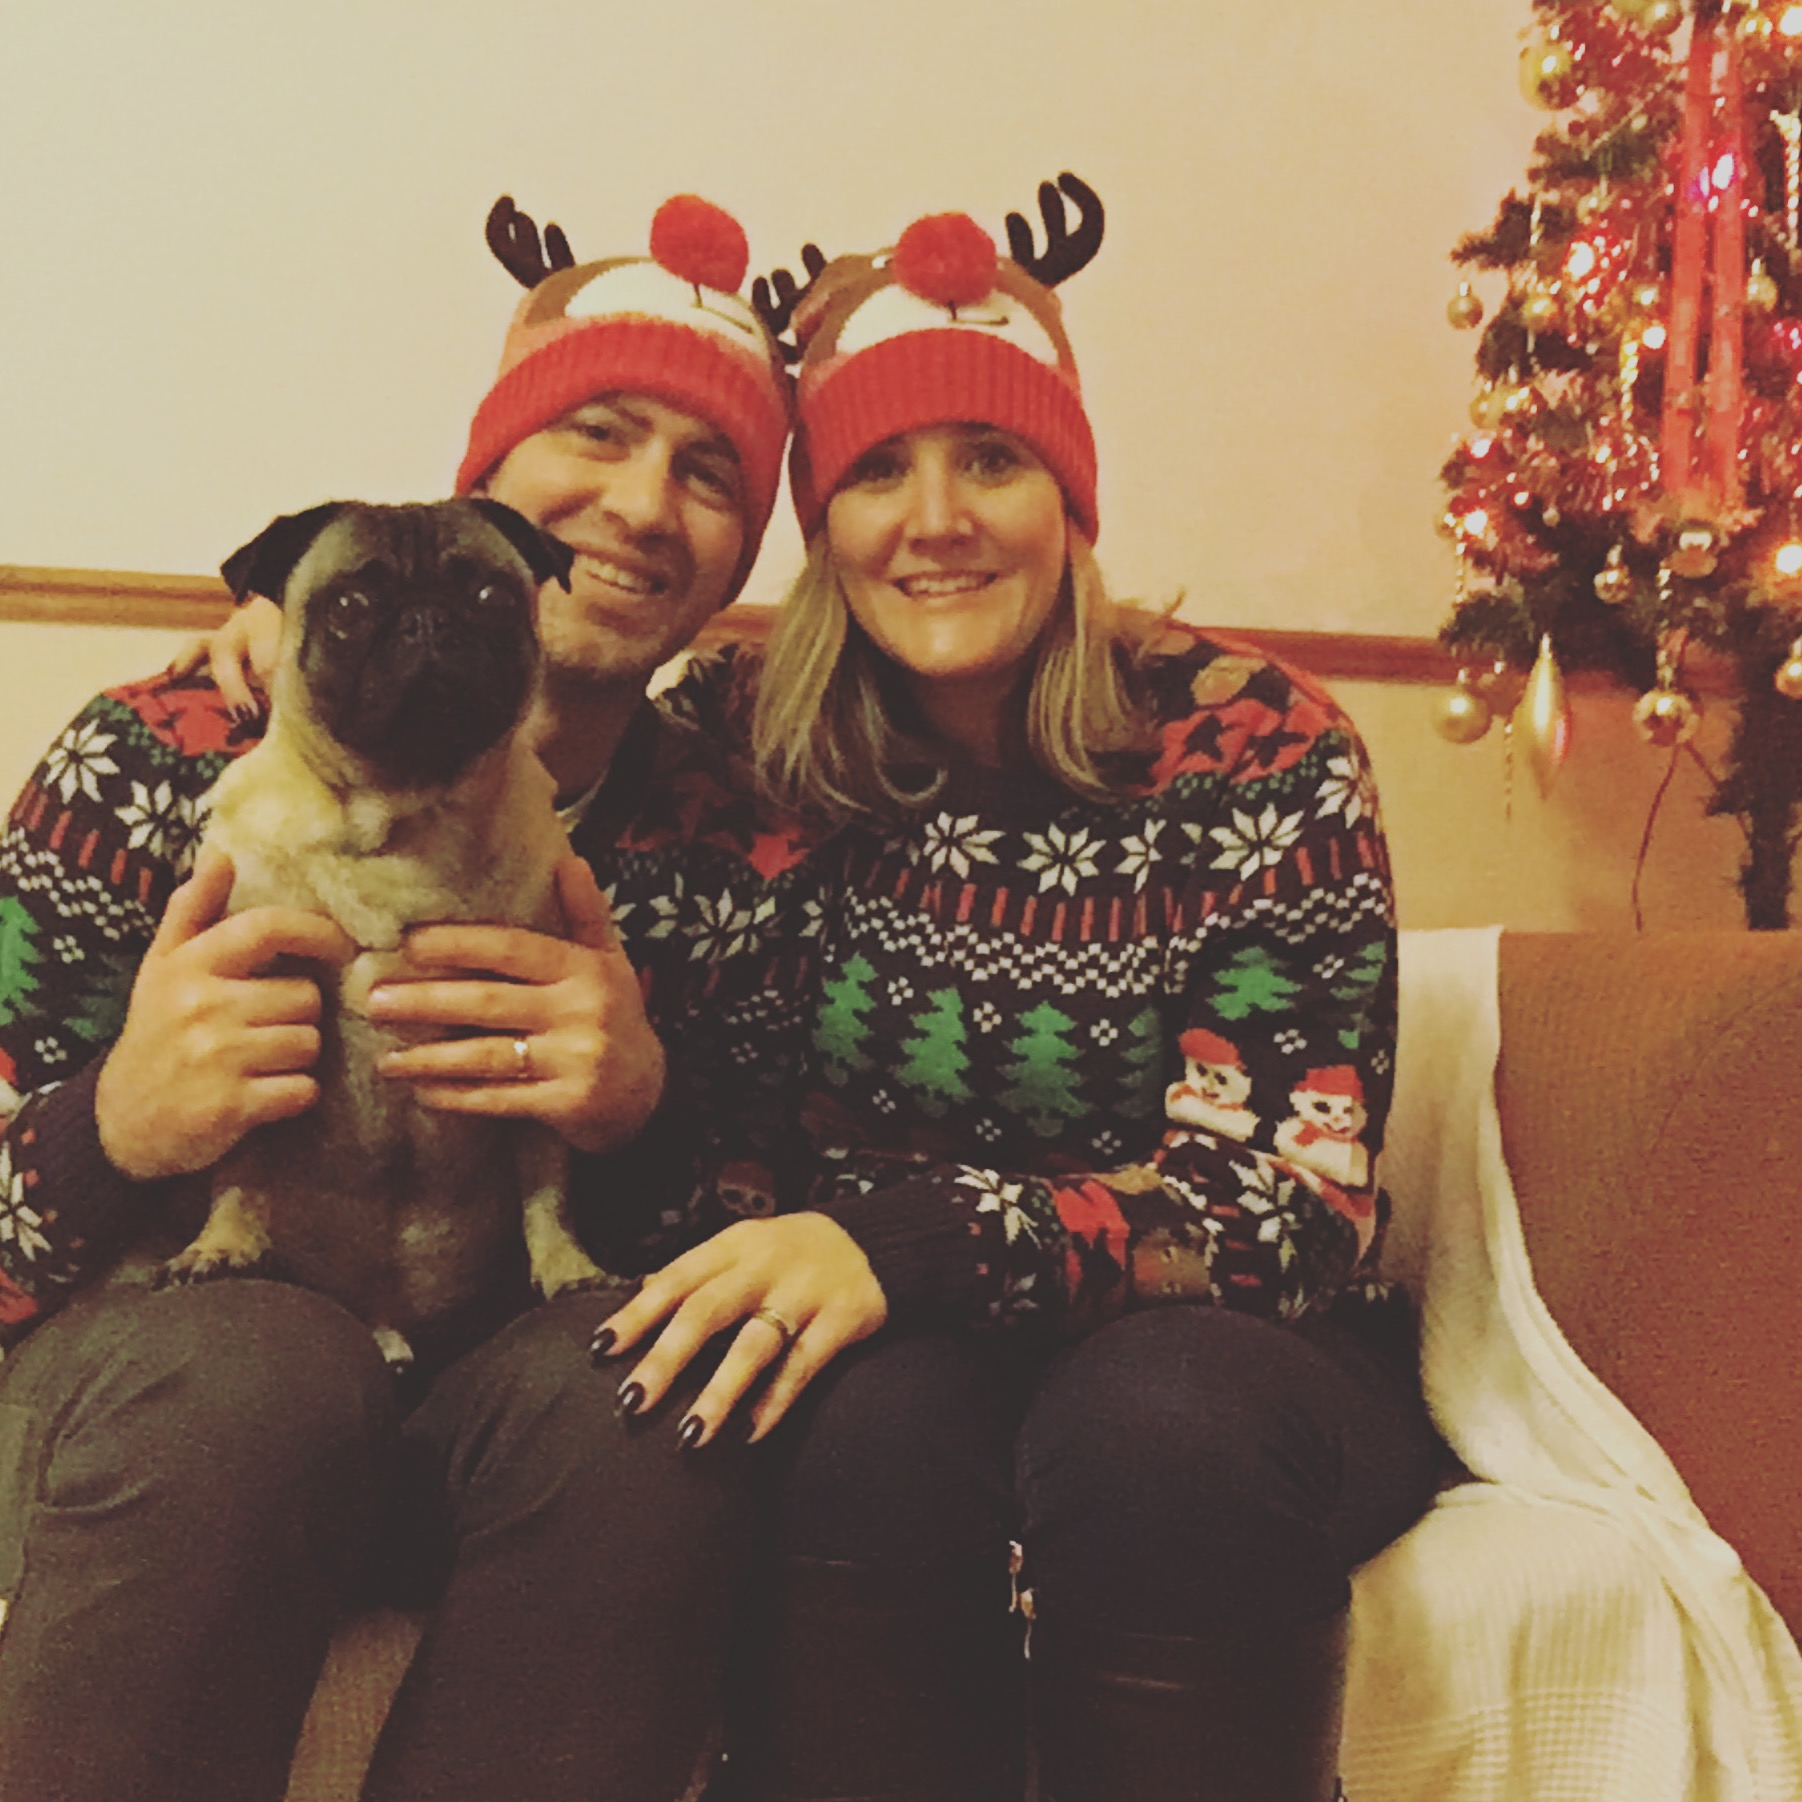 A family of reindeer for Christmas